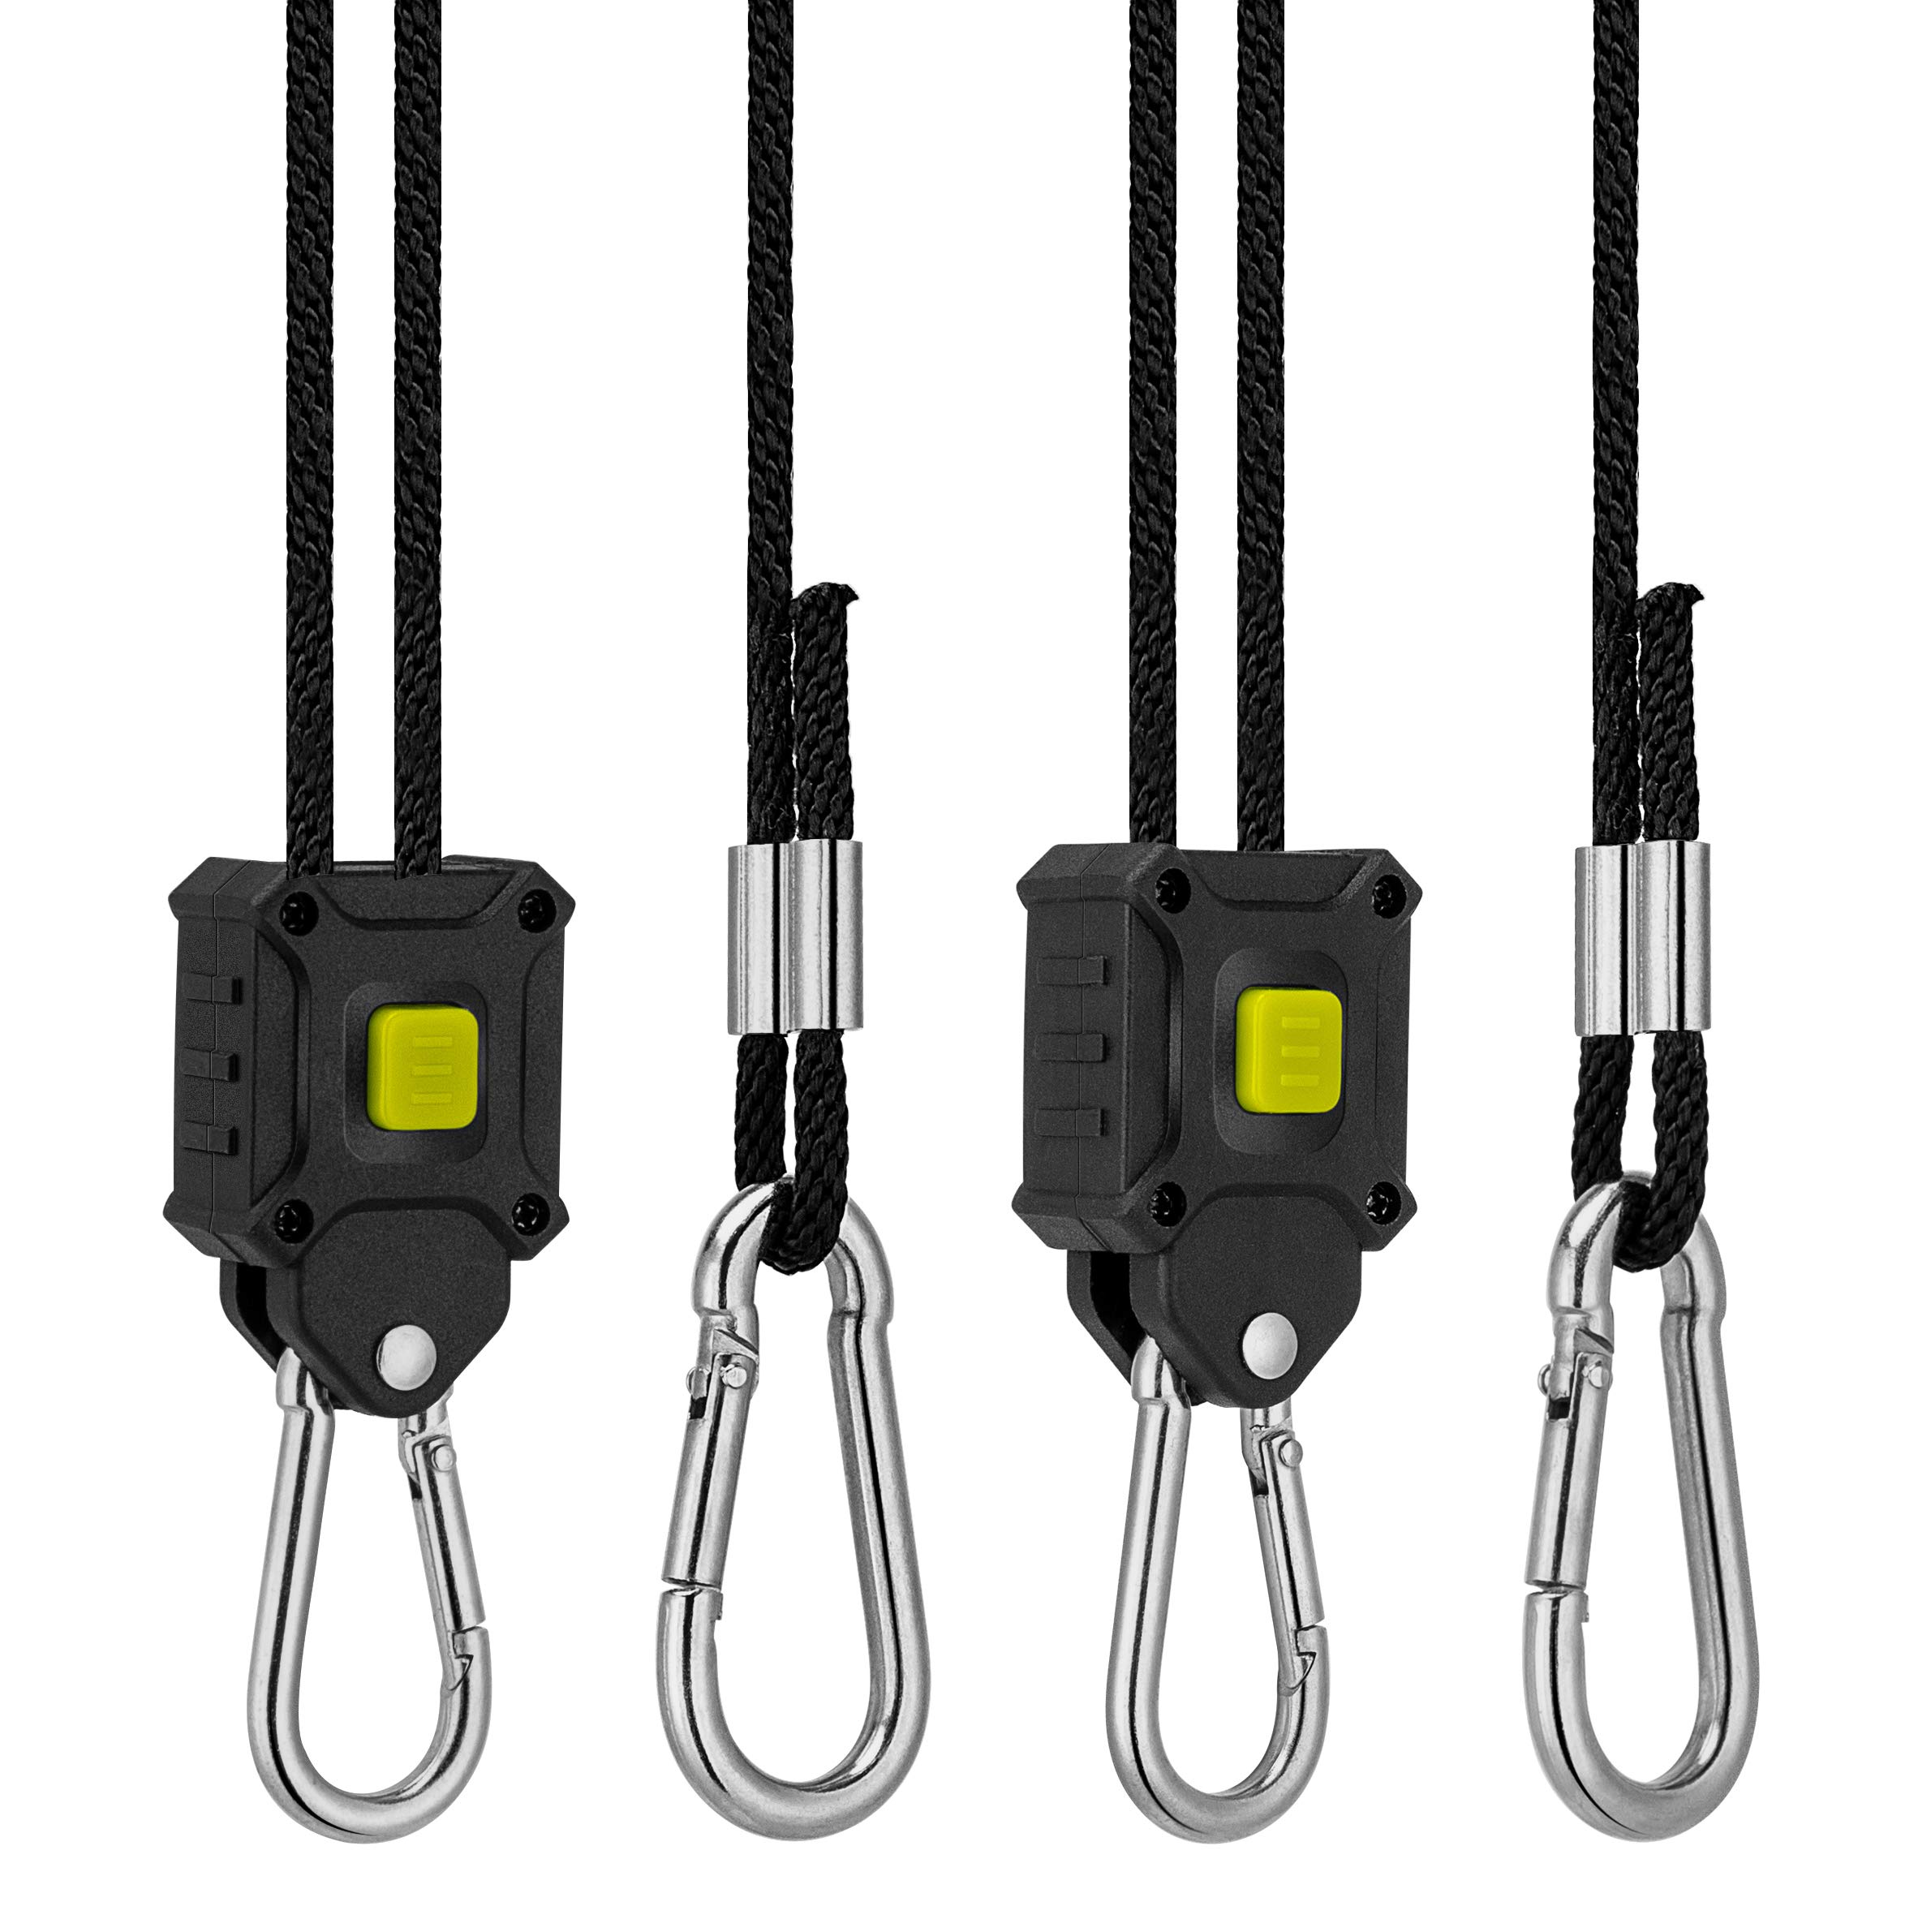 VIVOSUN 1-Pair 1/8 Inch Rope Hanger Improved Design, More Convenience - Press Button Easy Adjust, Reinforced Metal Internal Gears, 8-ft Long and 150lbs Weight Capacity